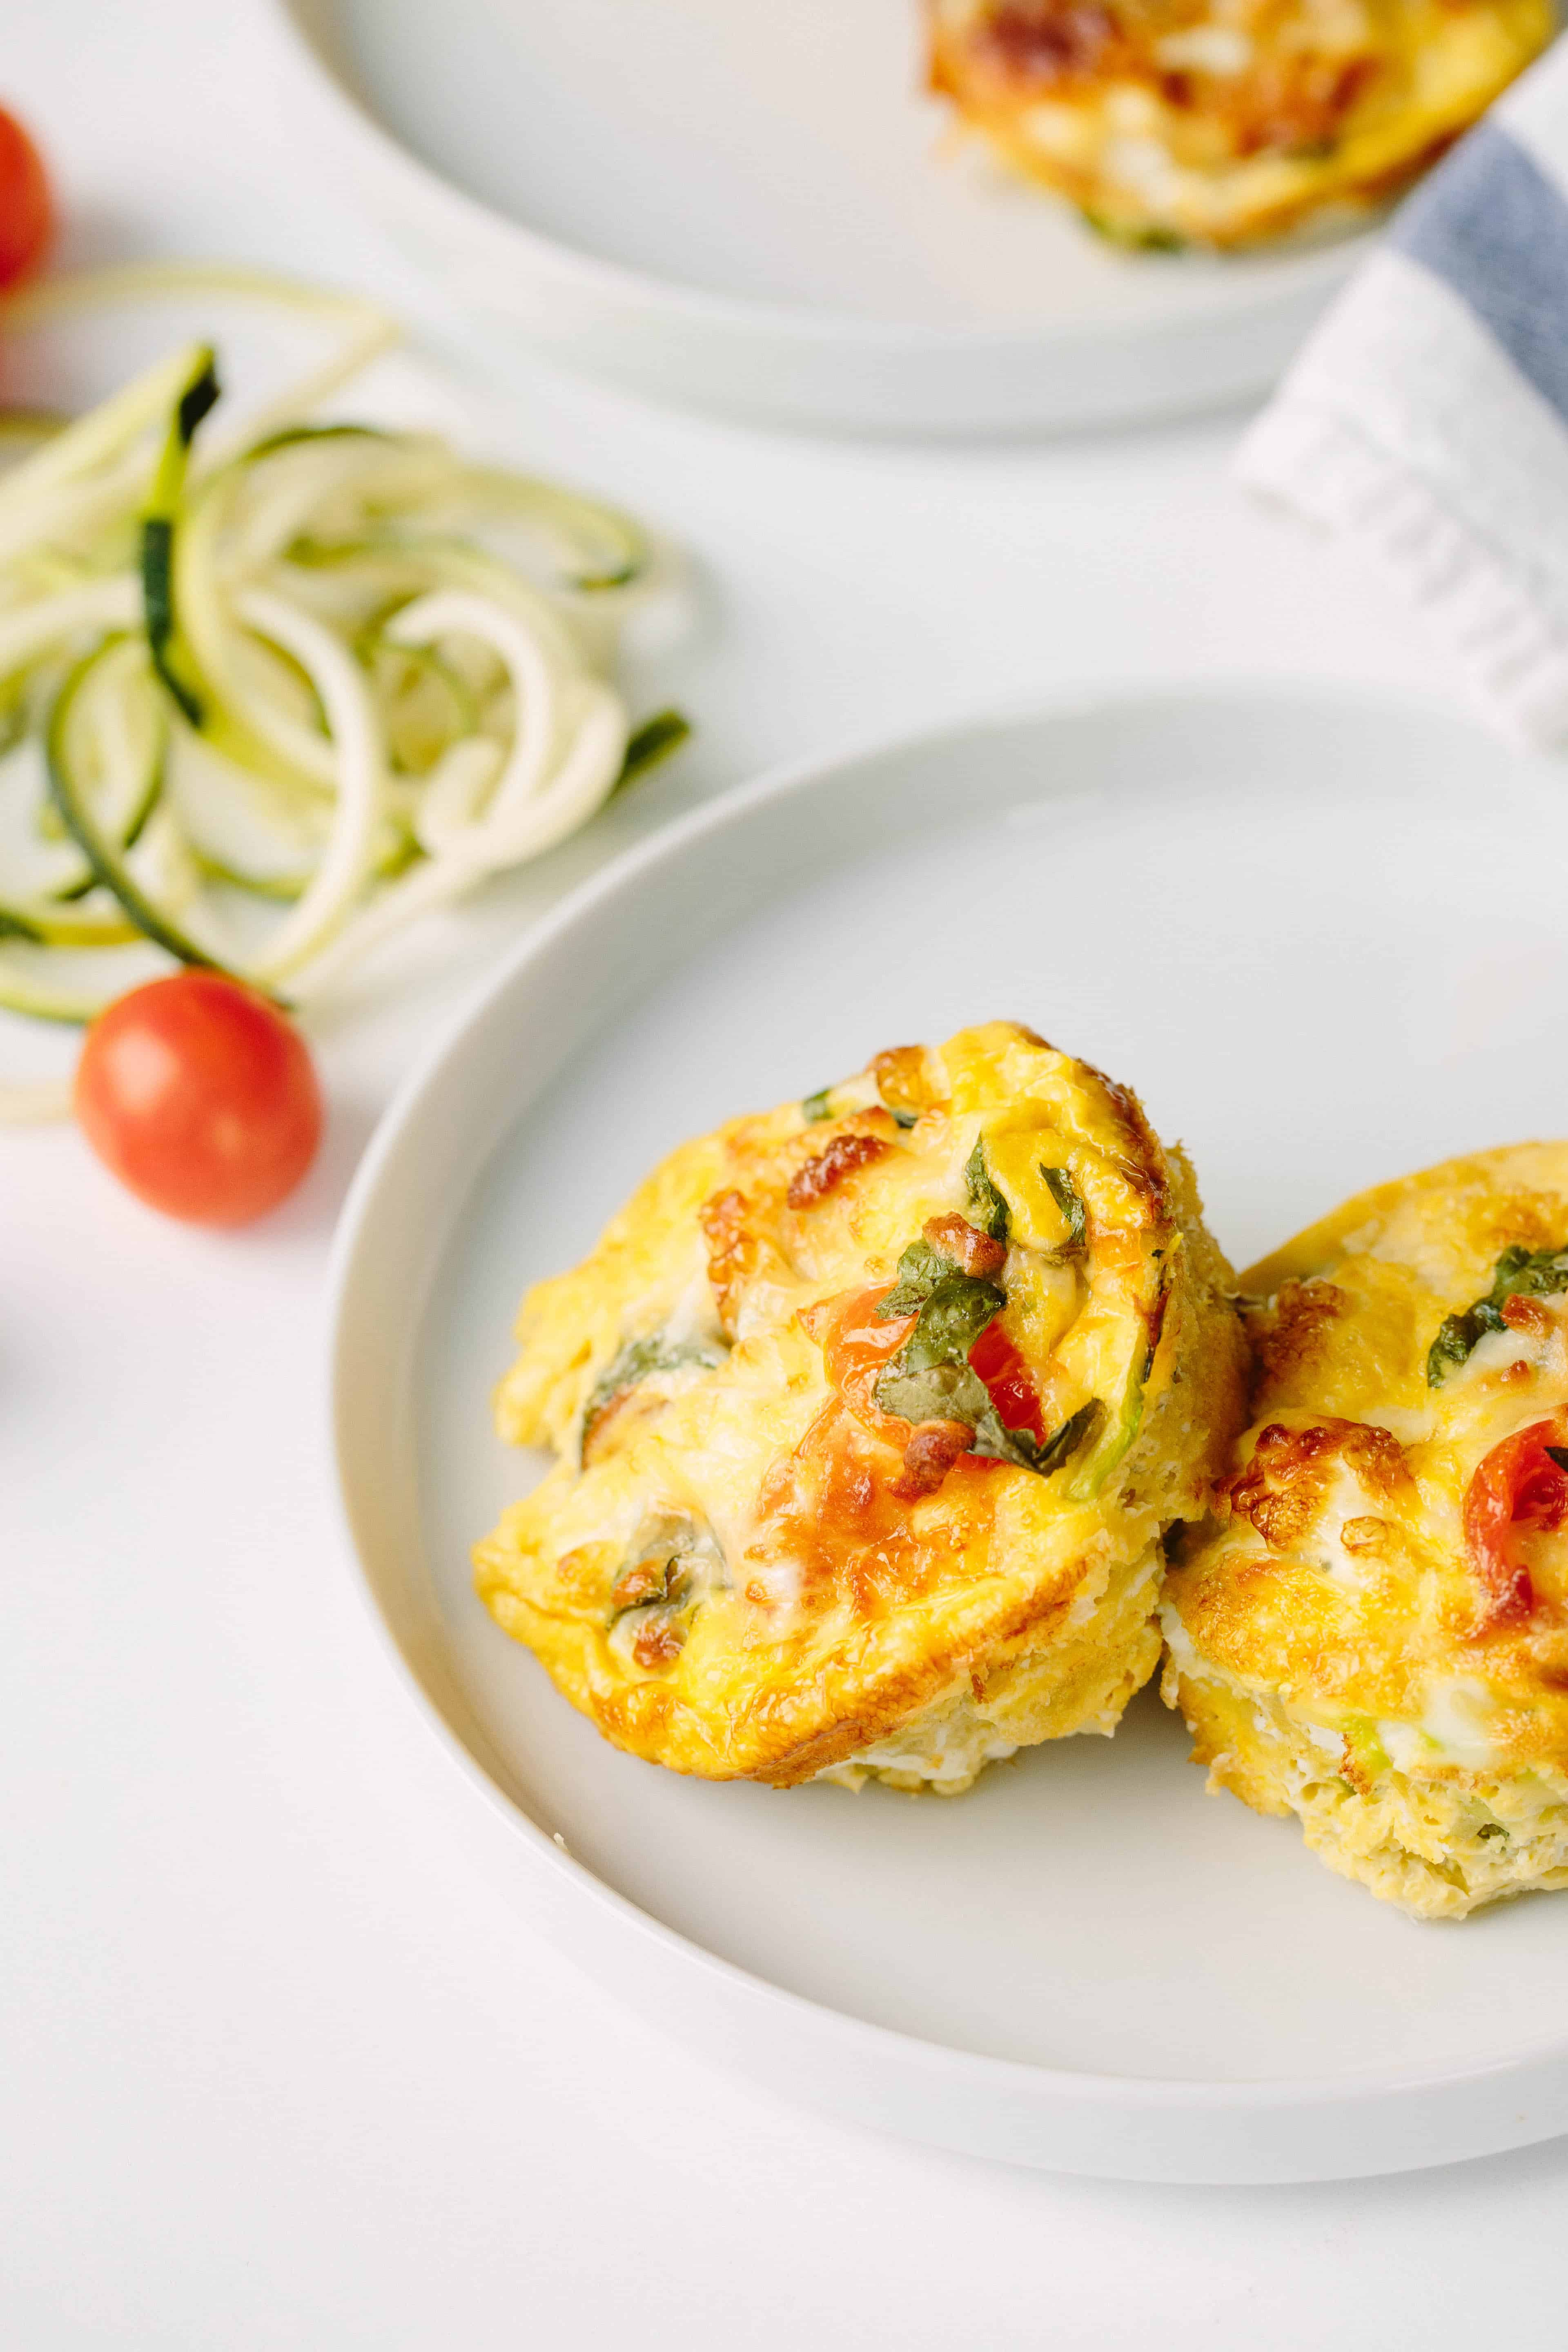 Summer Egg Muffins with Zucchini Noodles